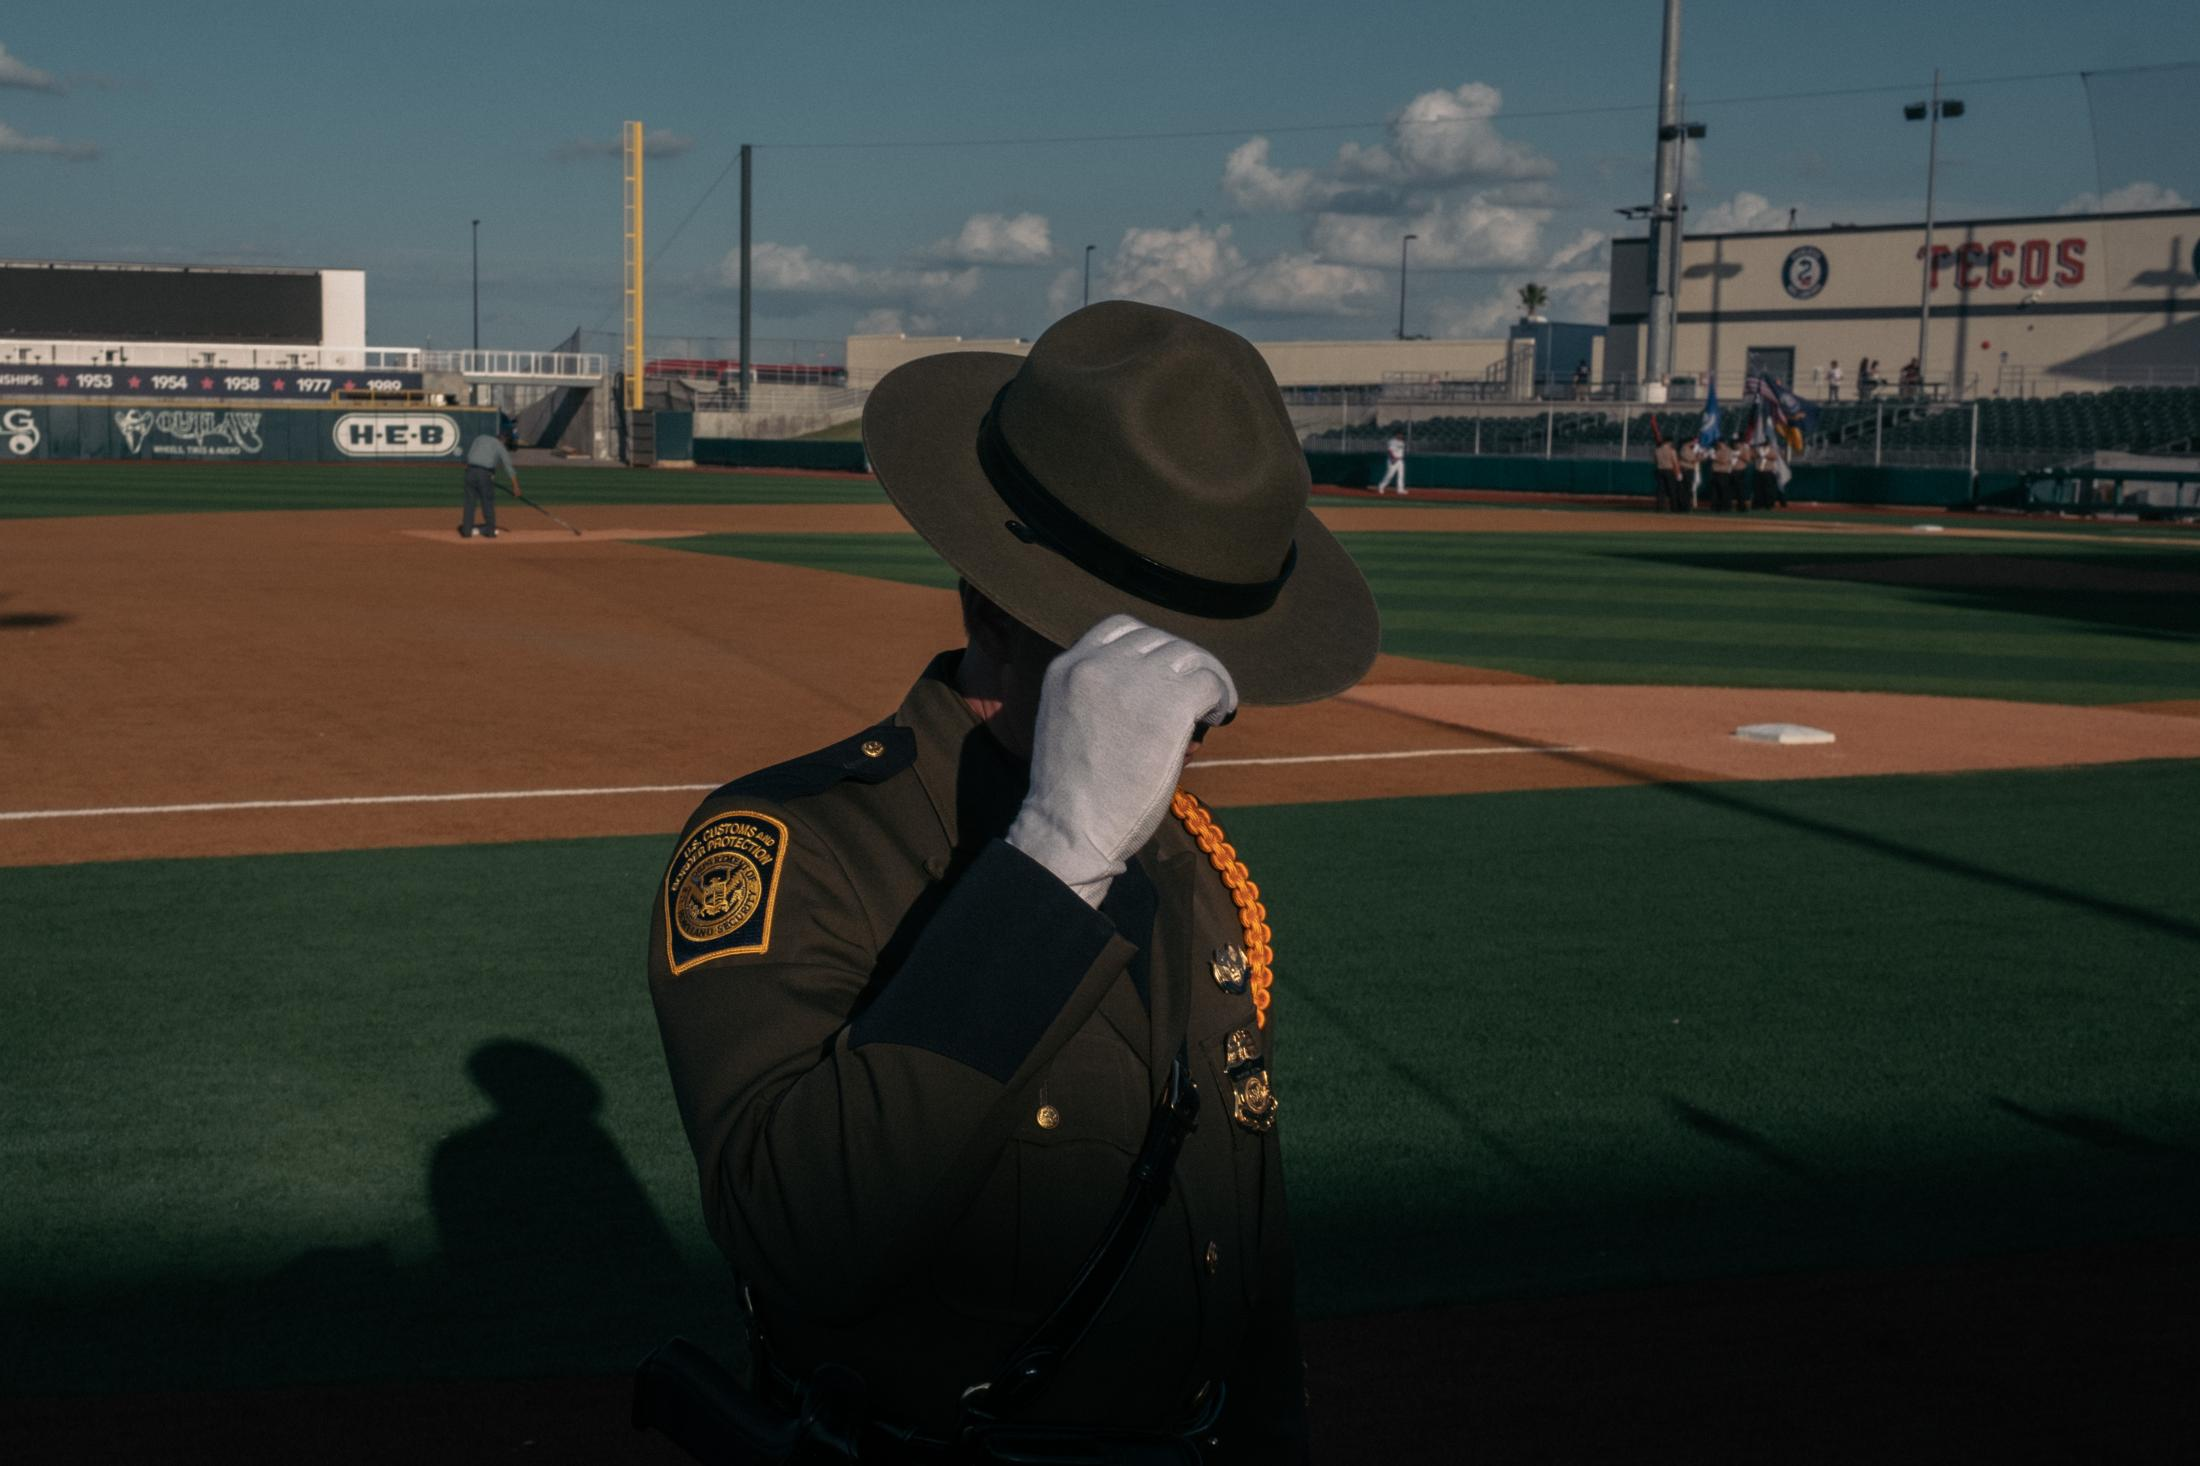 Border Patrol Agent Joshua Steele prepares to sing the U.S. national anthem before a baseball game at Laredo's Uni-Trade Stadium. Shot on assignment for L'EQUIPE. Laredo, Texas, United States, May 2021.